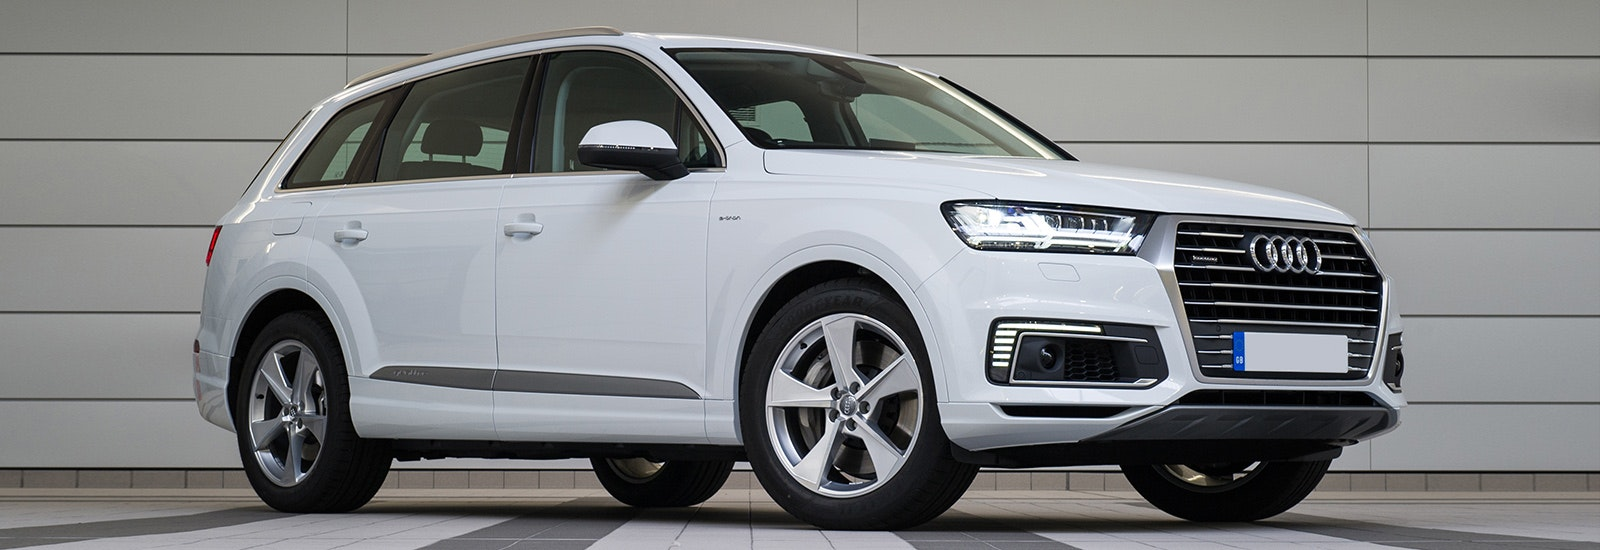 The Top 10 Best Hybrid Suvs And 4x4s Carwow